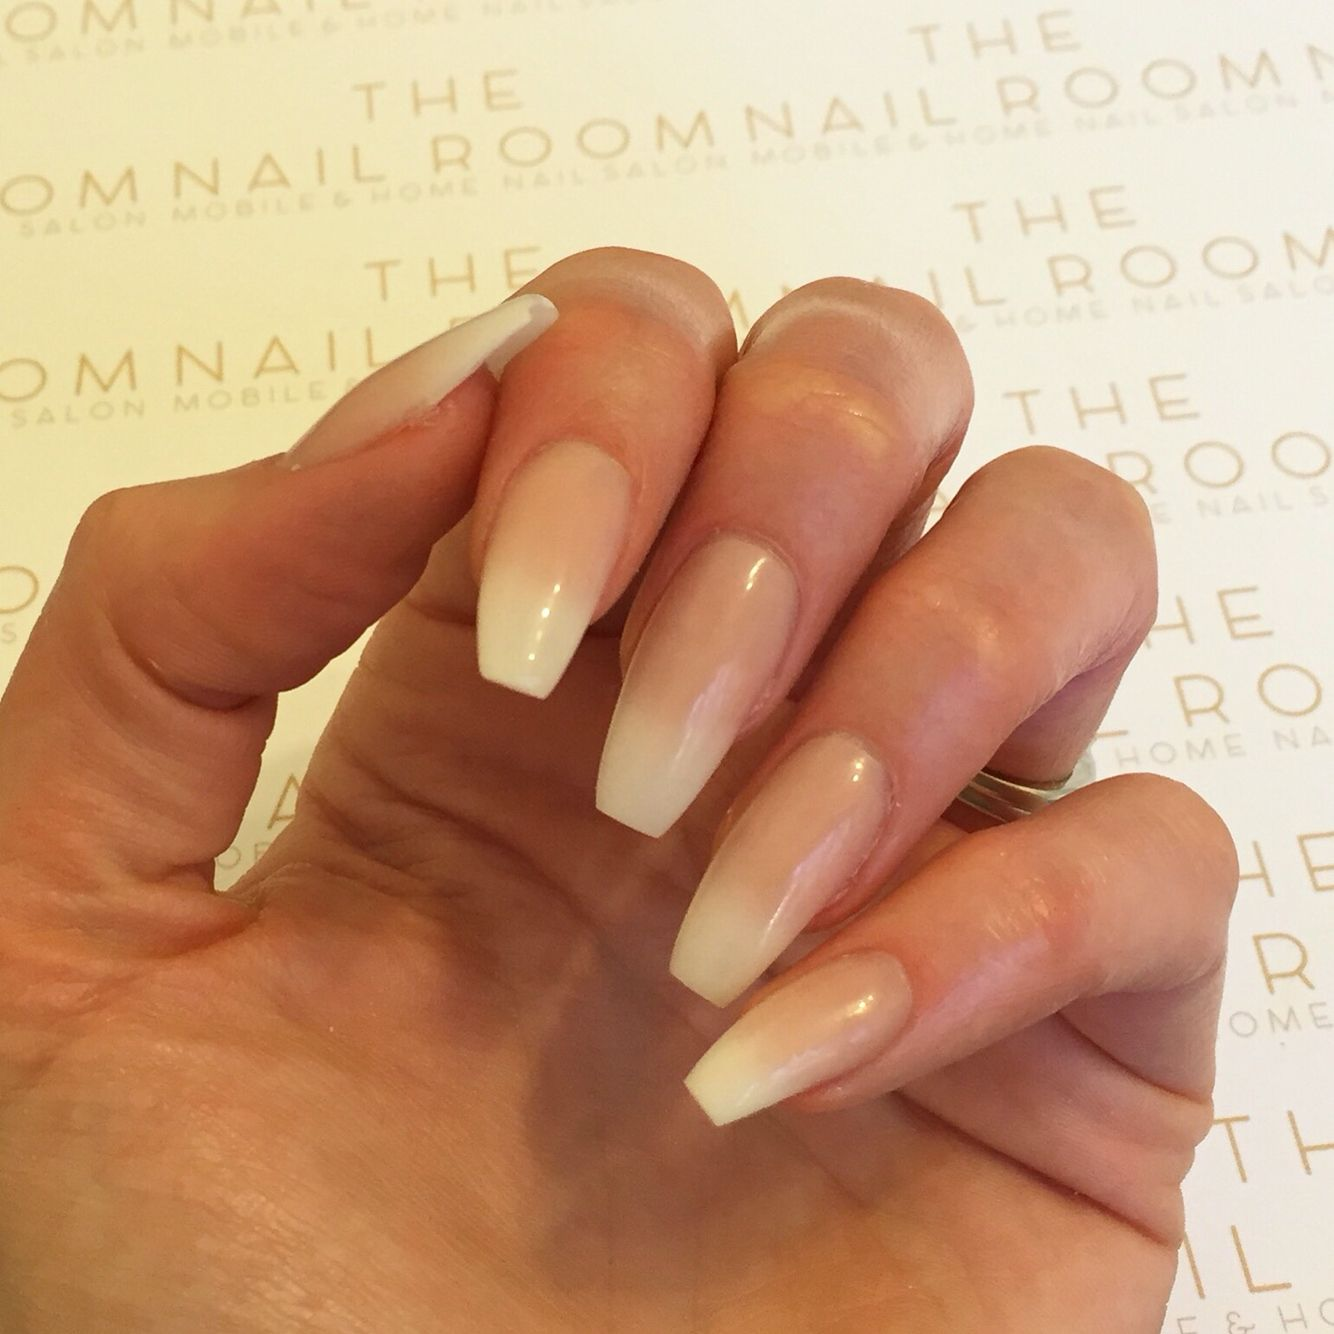 Faded French Acrylic Nails French Fade Nails Faded Nails French Acrylic Nails